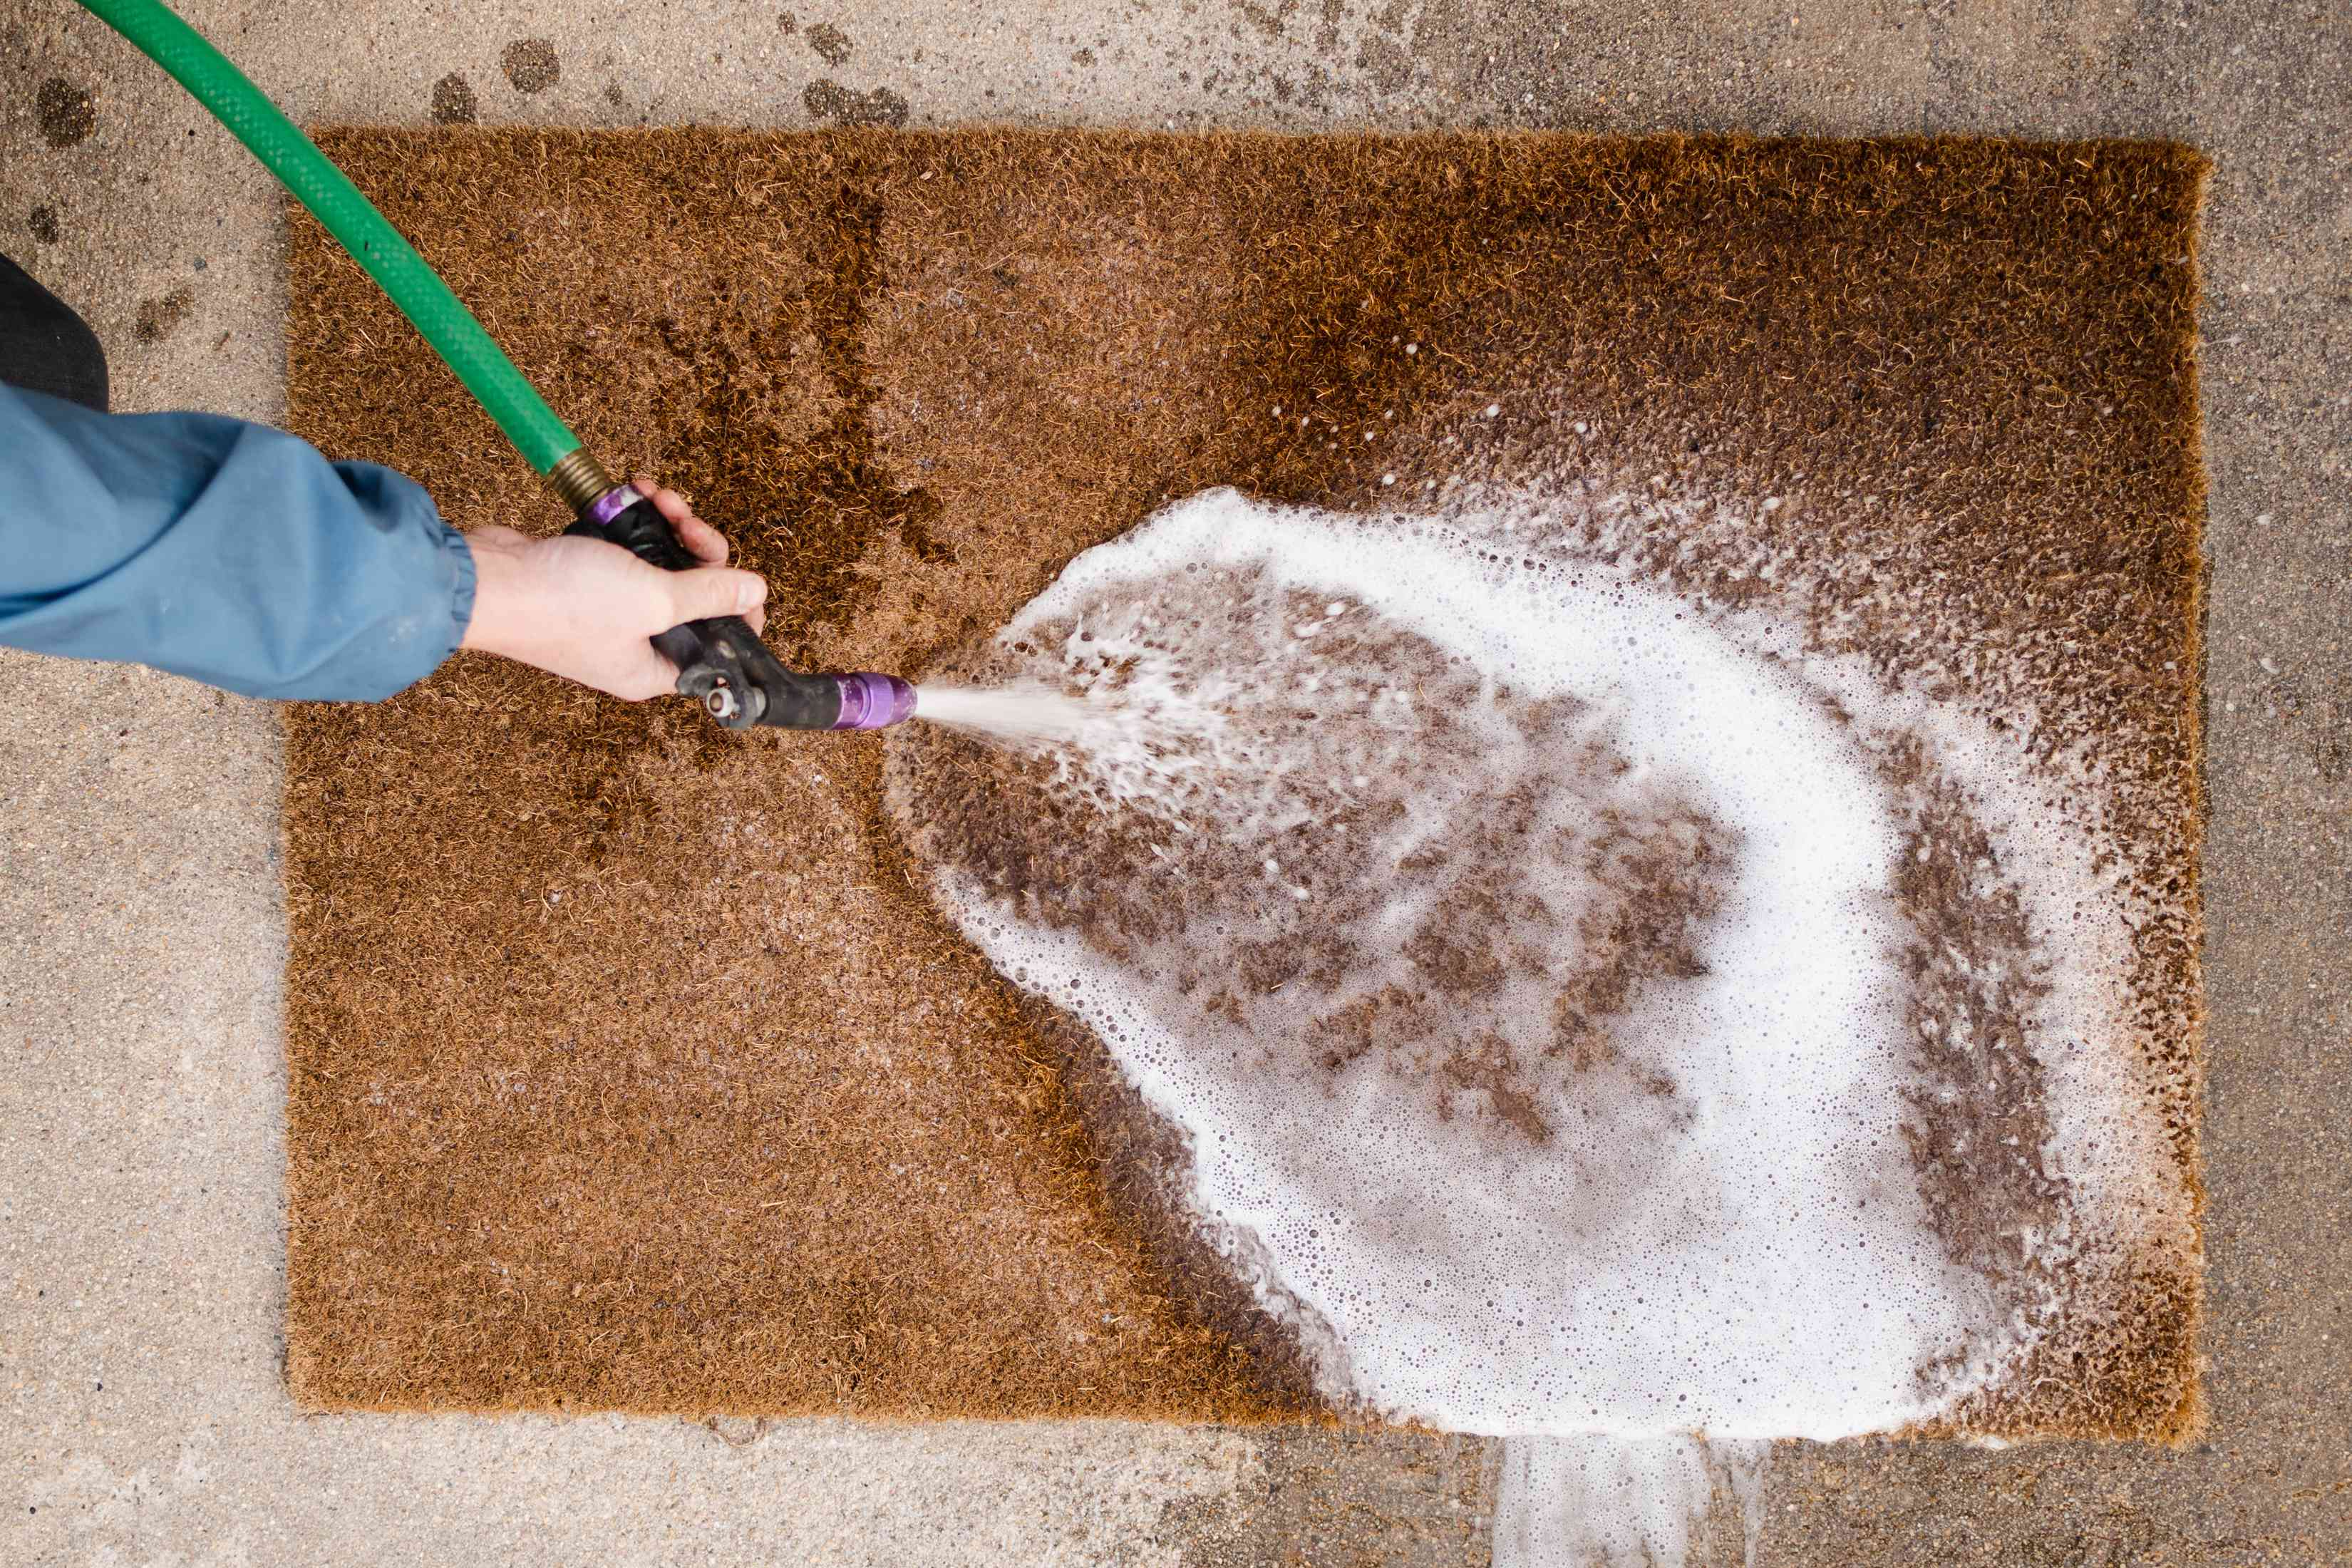 Brown doormat washed down with garden hose